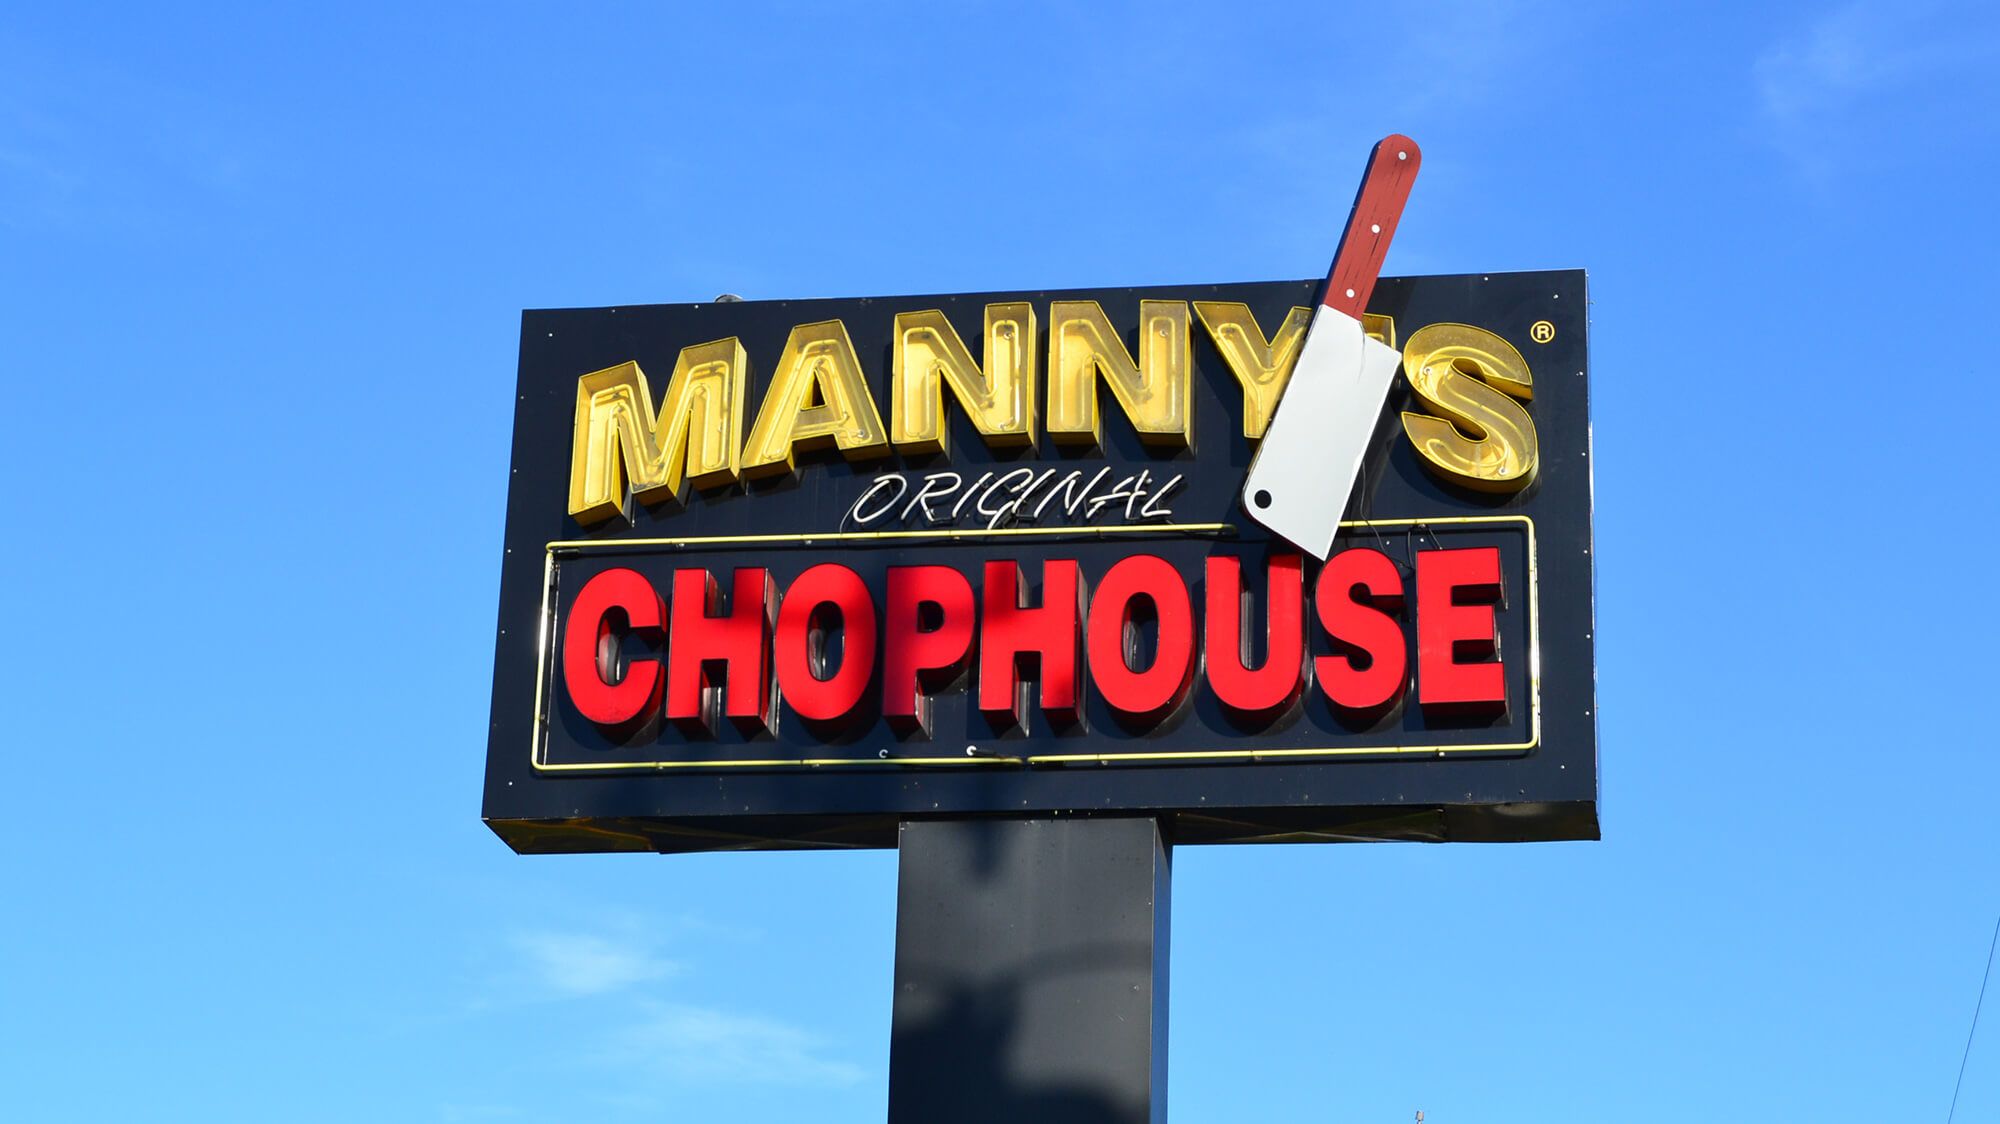 Manny's Original Chophouse sign